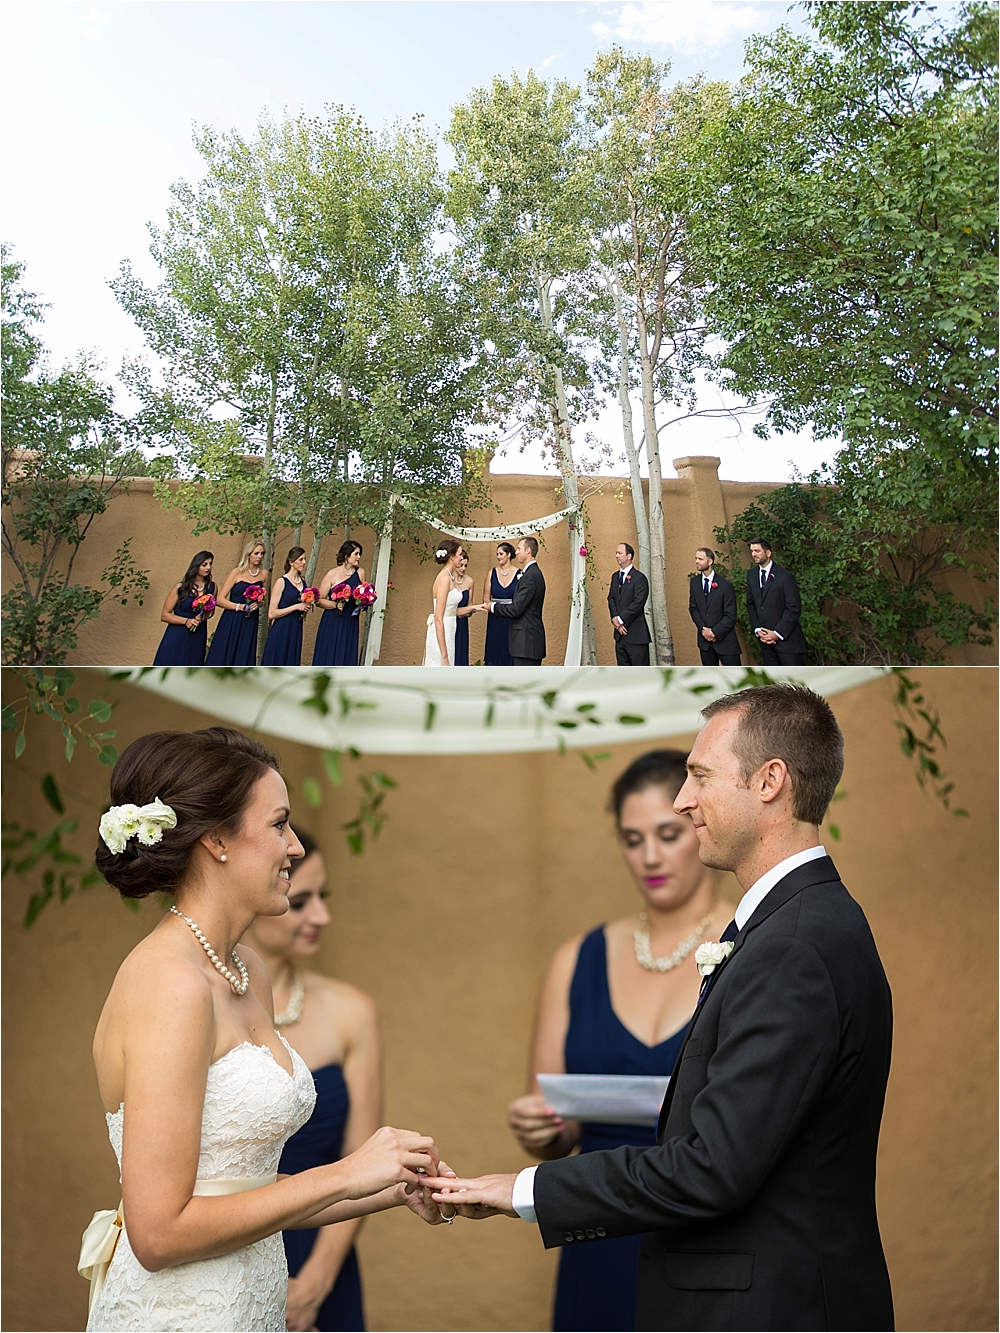 Leah and Travis Colorado Wedding| Colorado Wedding Photographer_0108.jpg